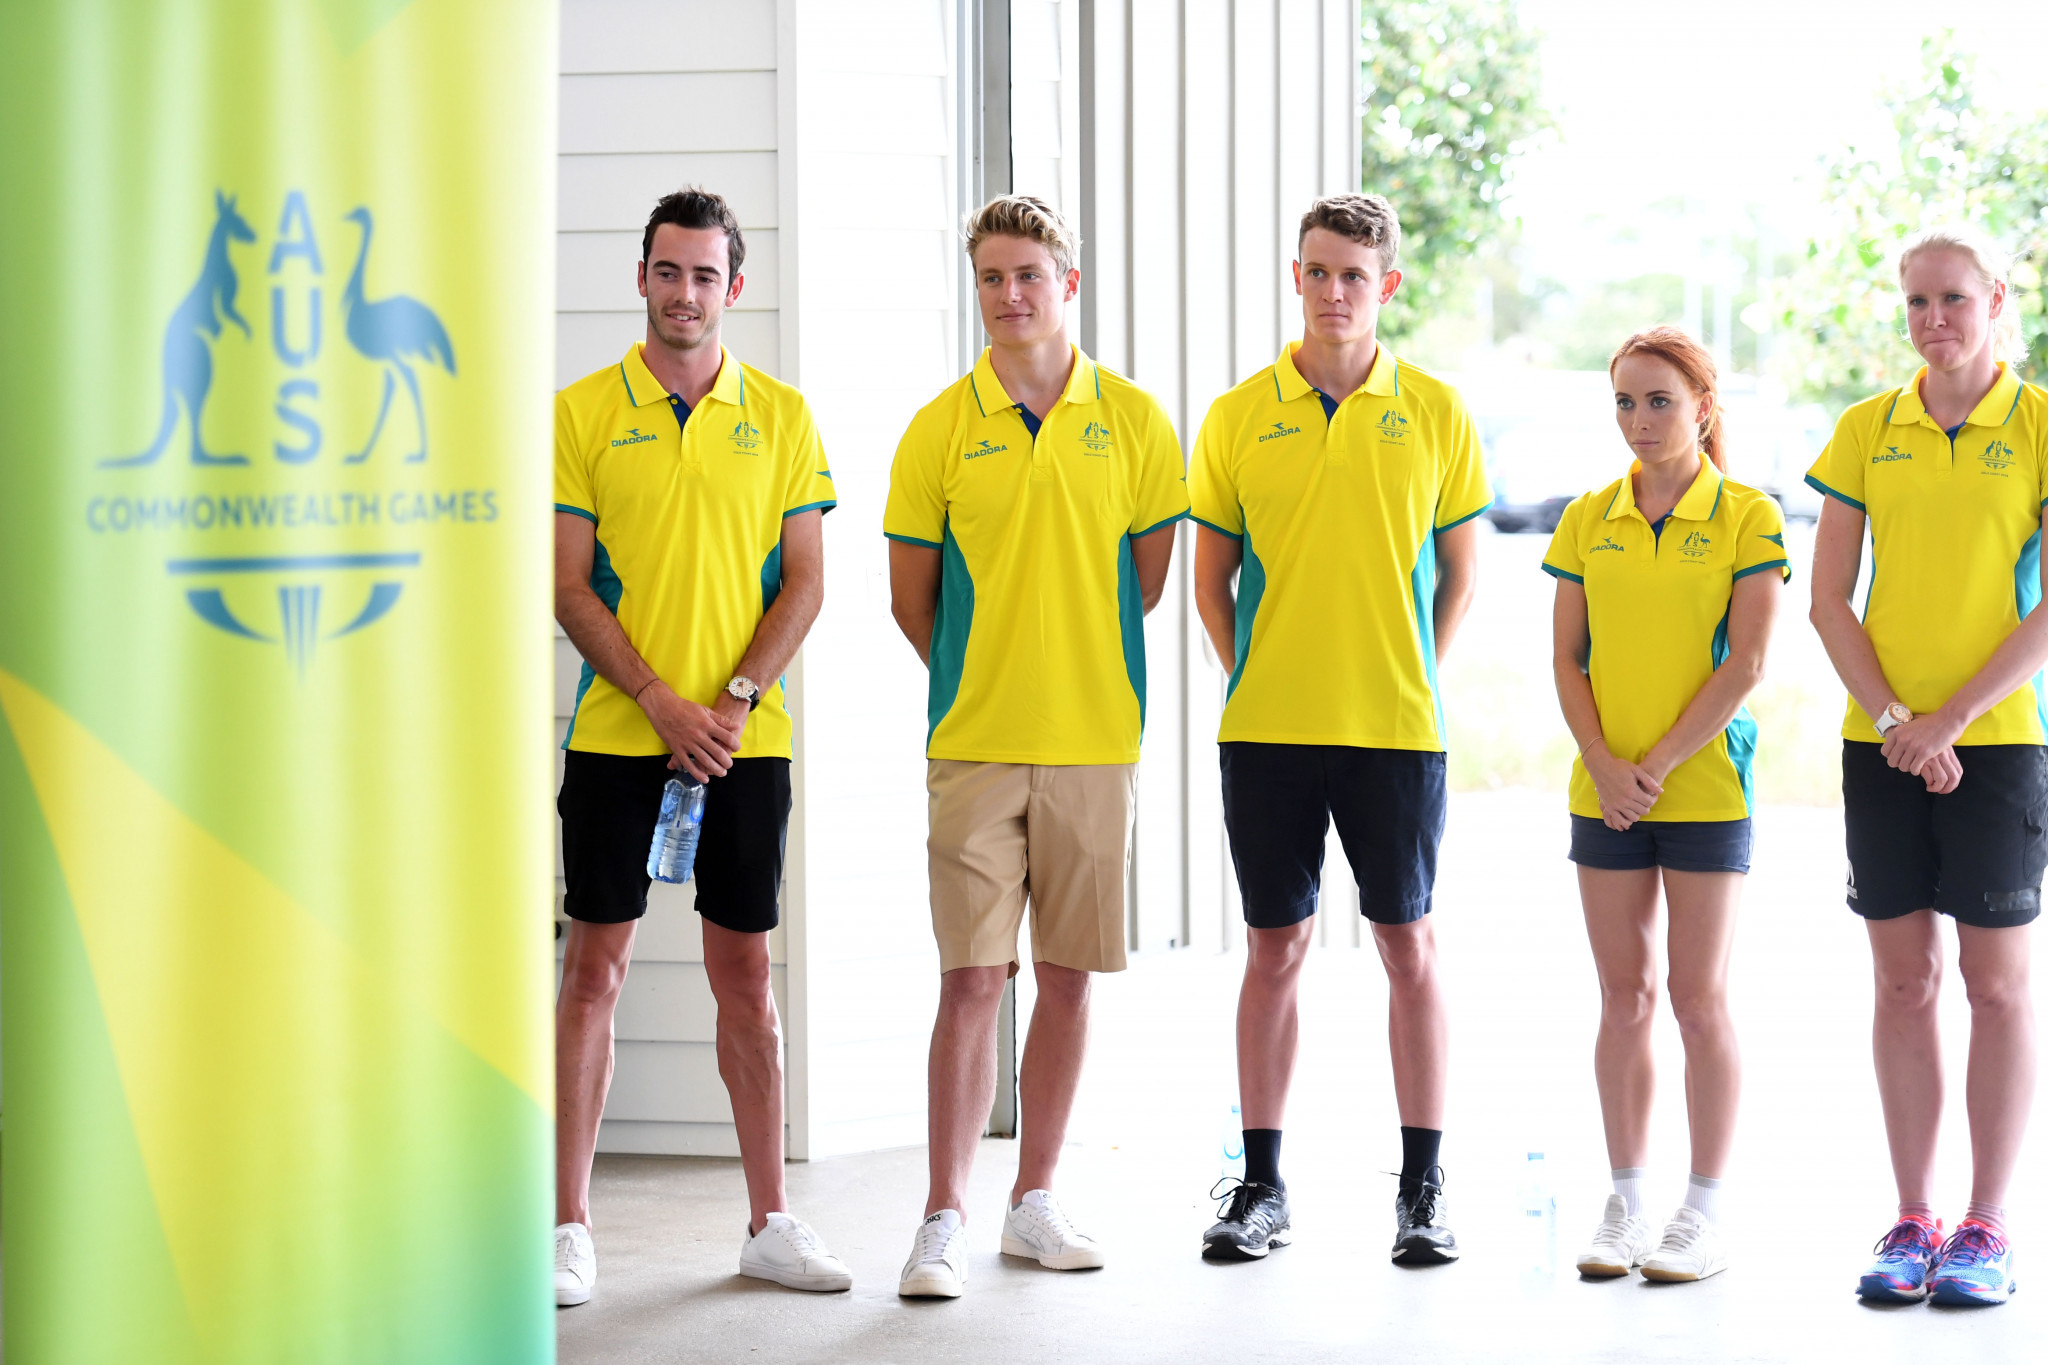 Members of the Australian triathlon team for the Gold Coast Commonwealth Games, who were named today at Broadwater Parklands in Southport ©Commonwealth Games Australia